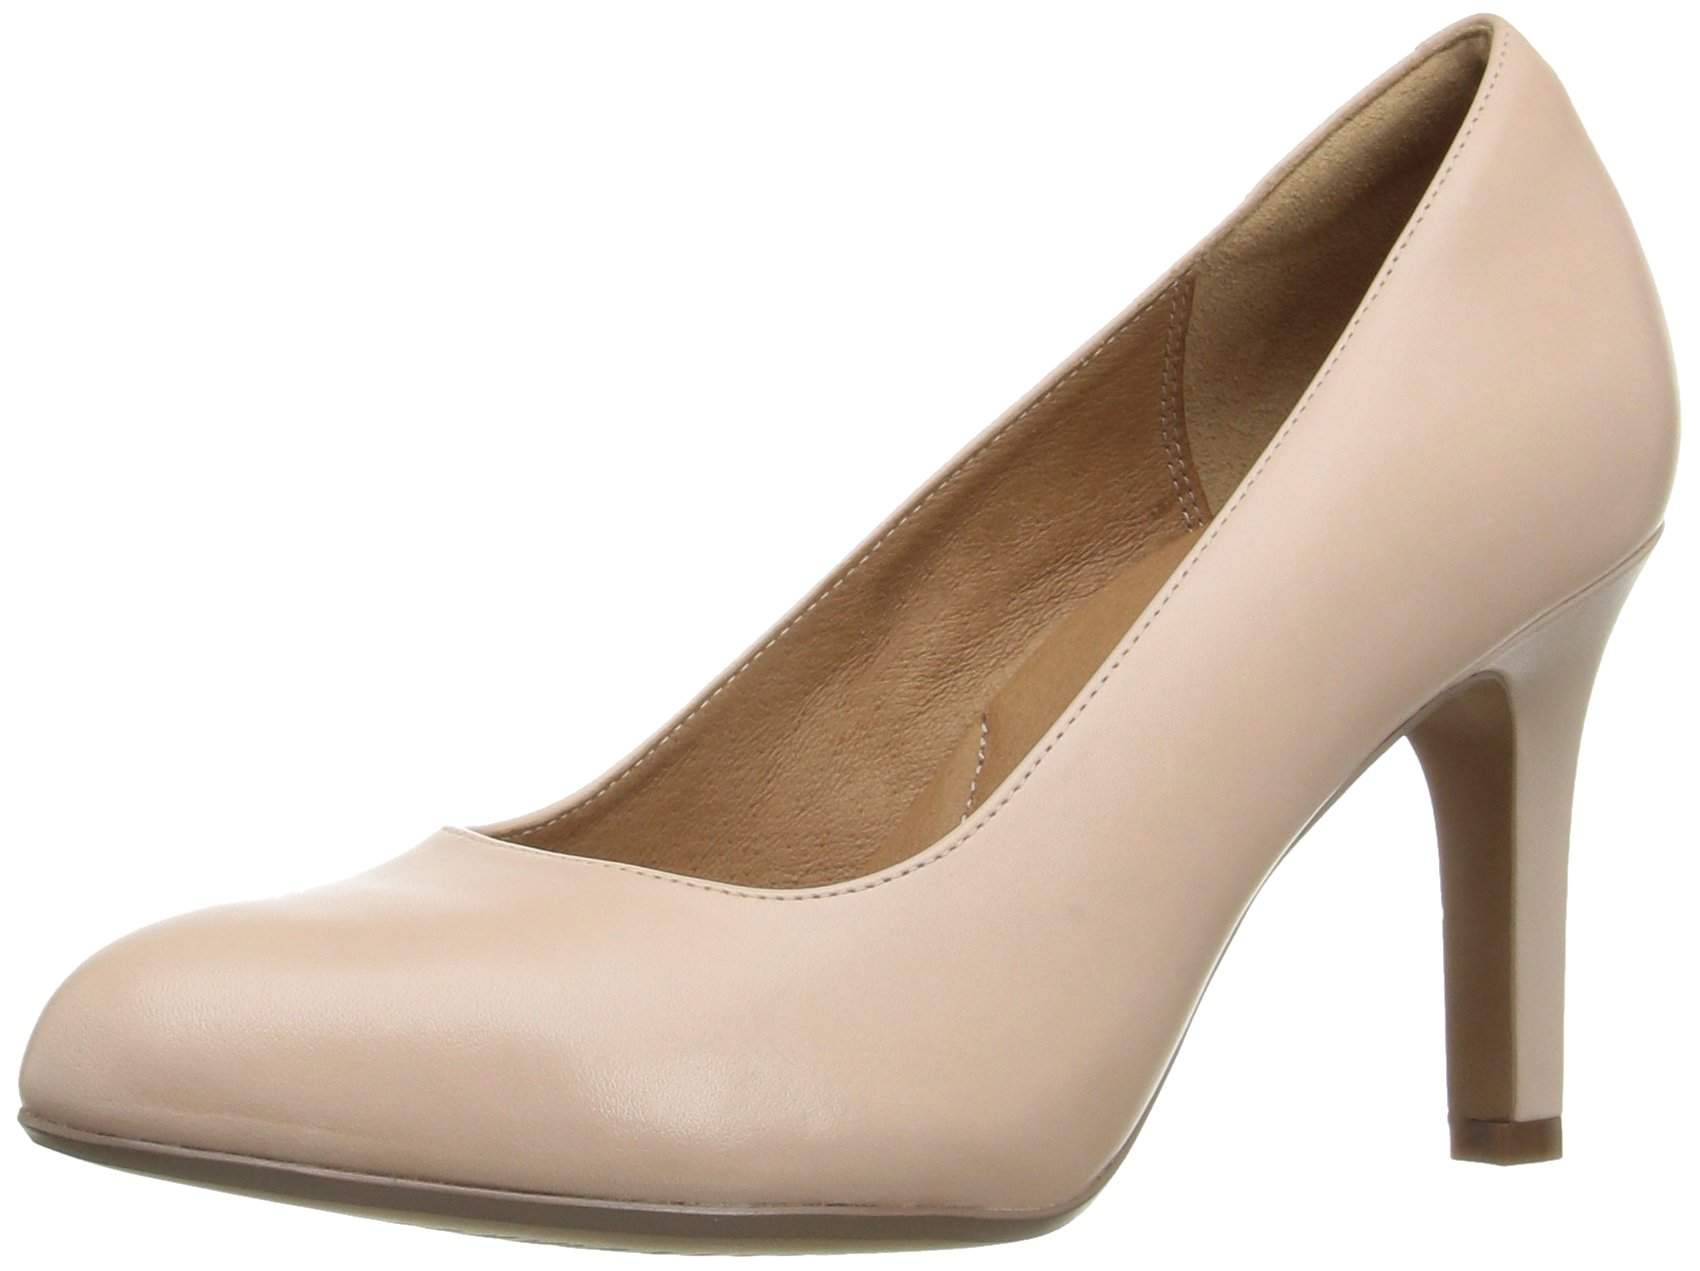 Clarks Women's Heavenly Star Dress Pump, Nude Leather, 9 M US